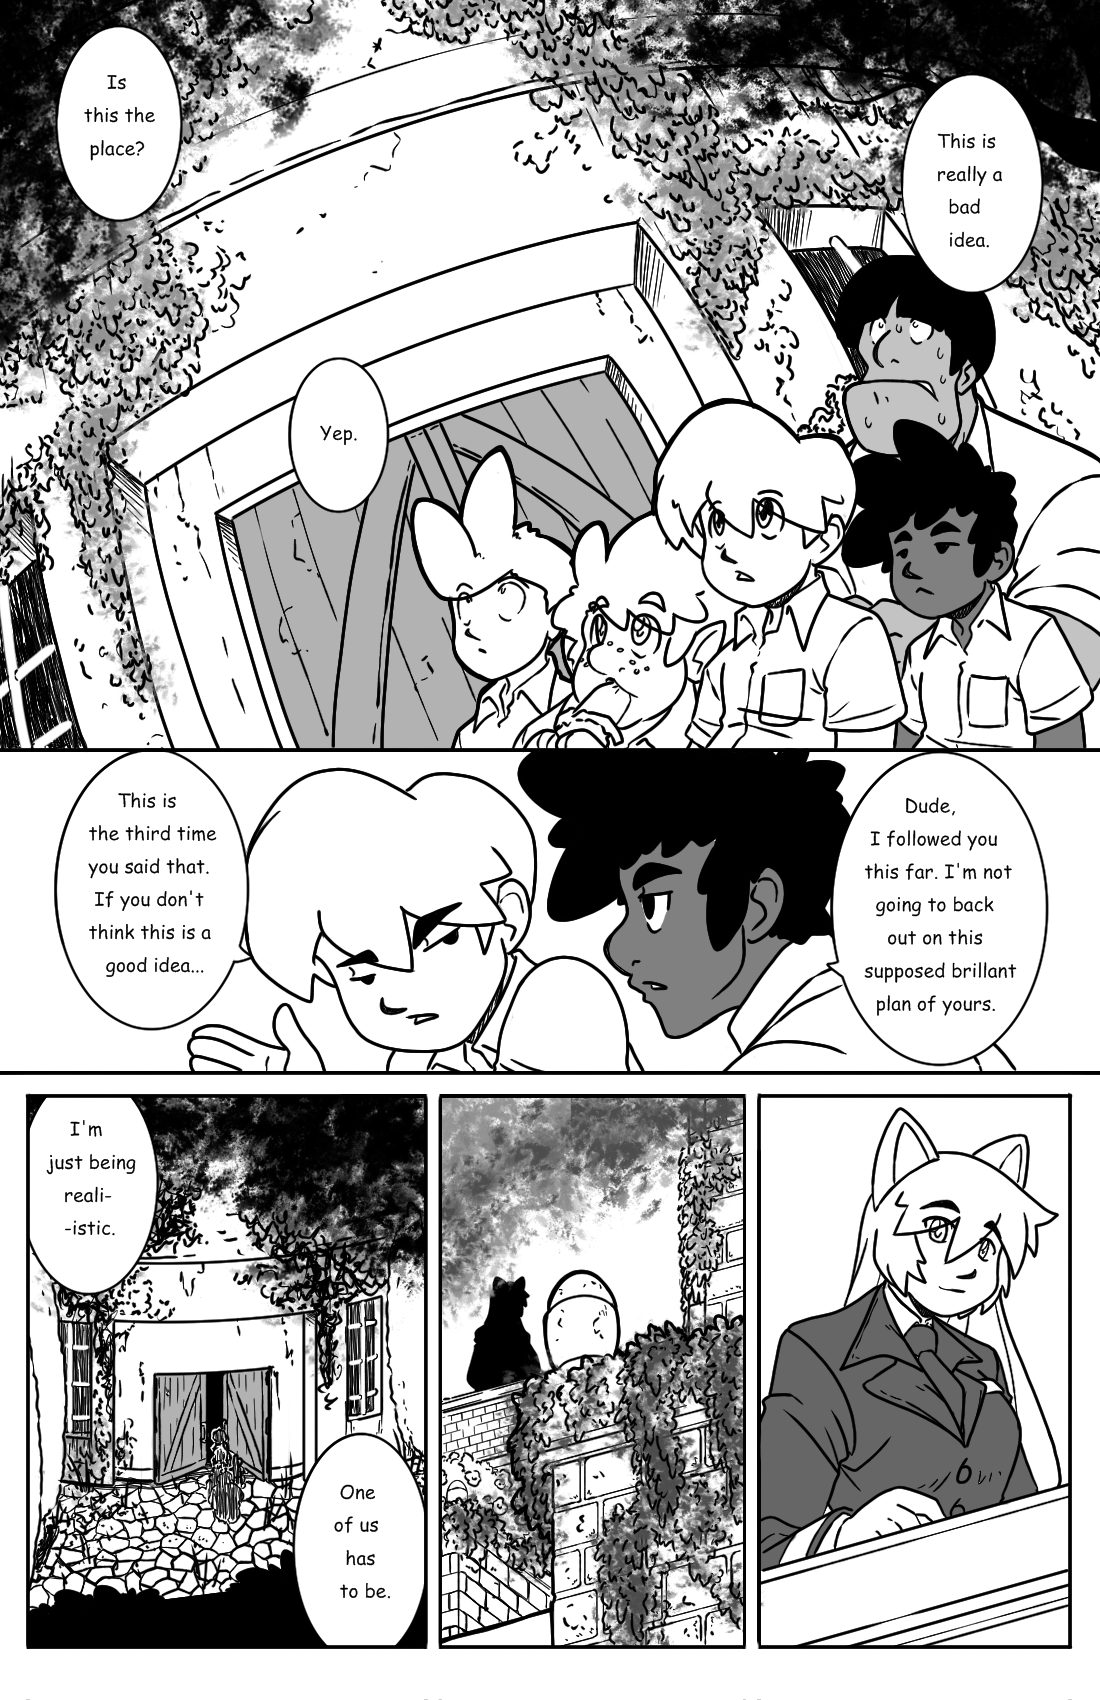 Bully Bully Part 2 pg.2